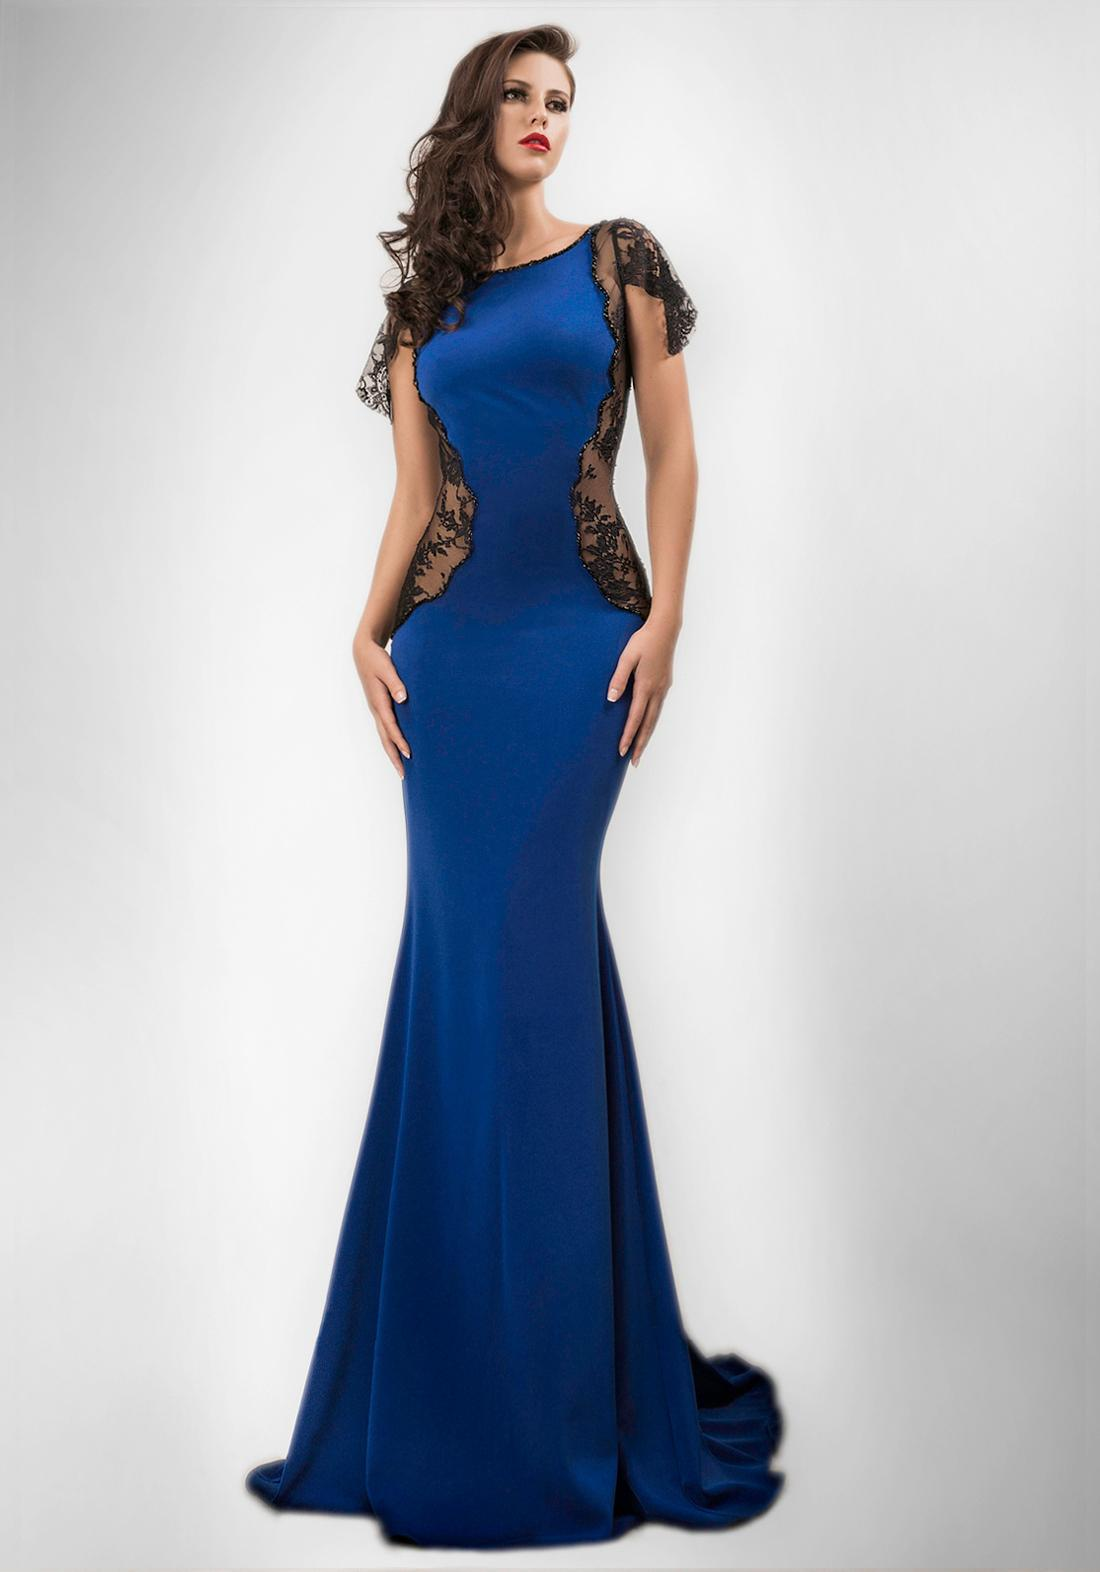 Royal Blue Mermaid Formal Evening Dress Black Lace Panel At Side ...